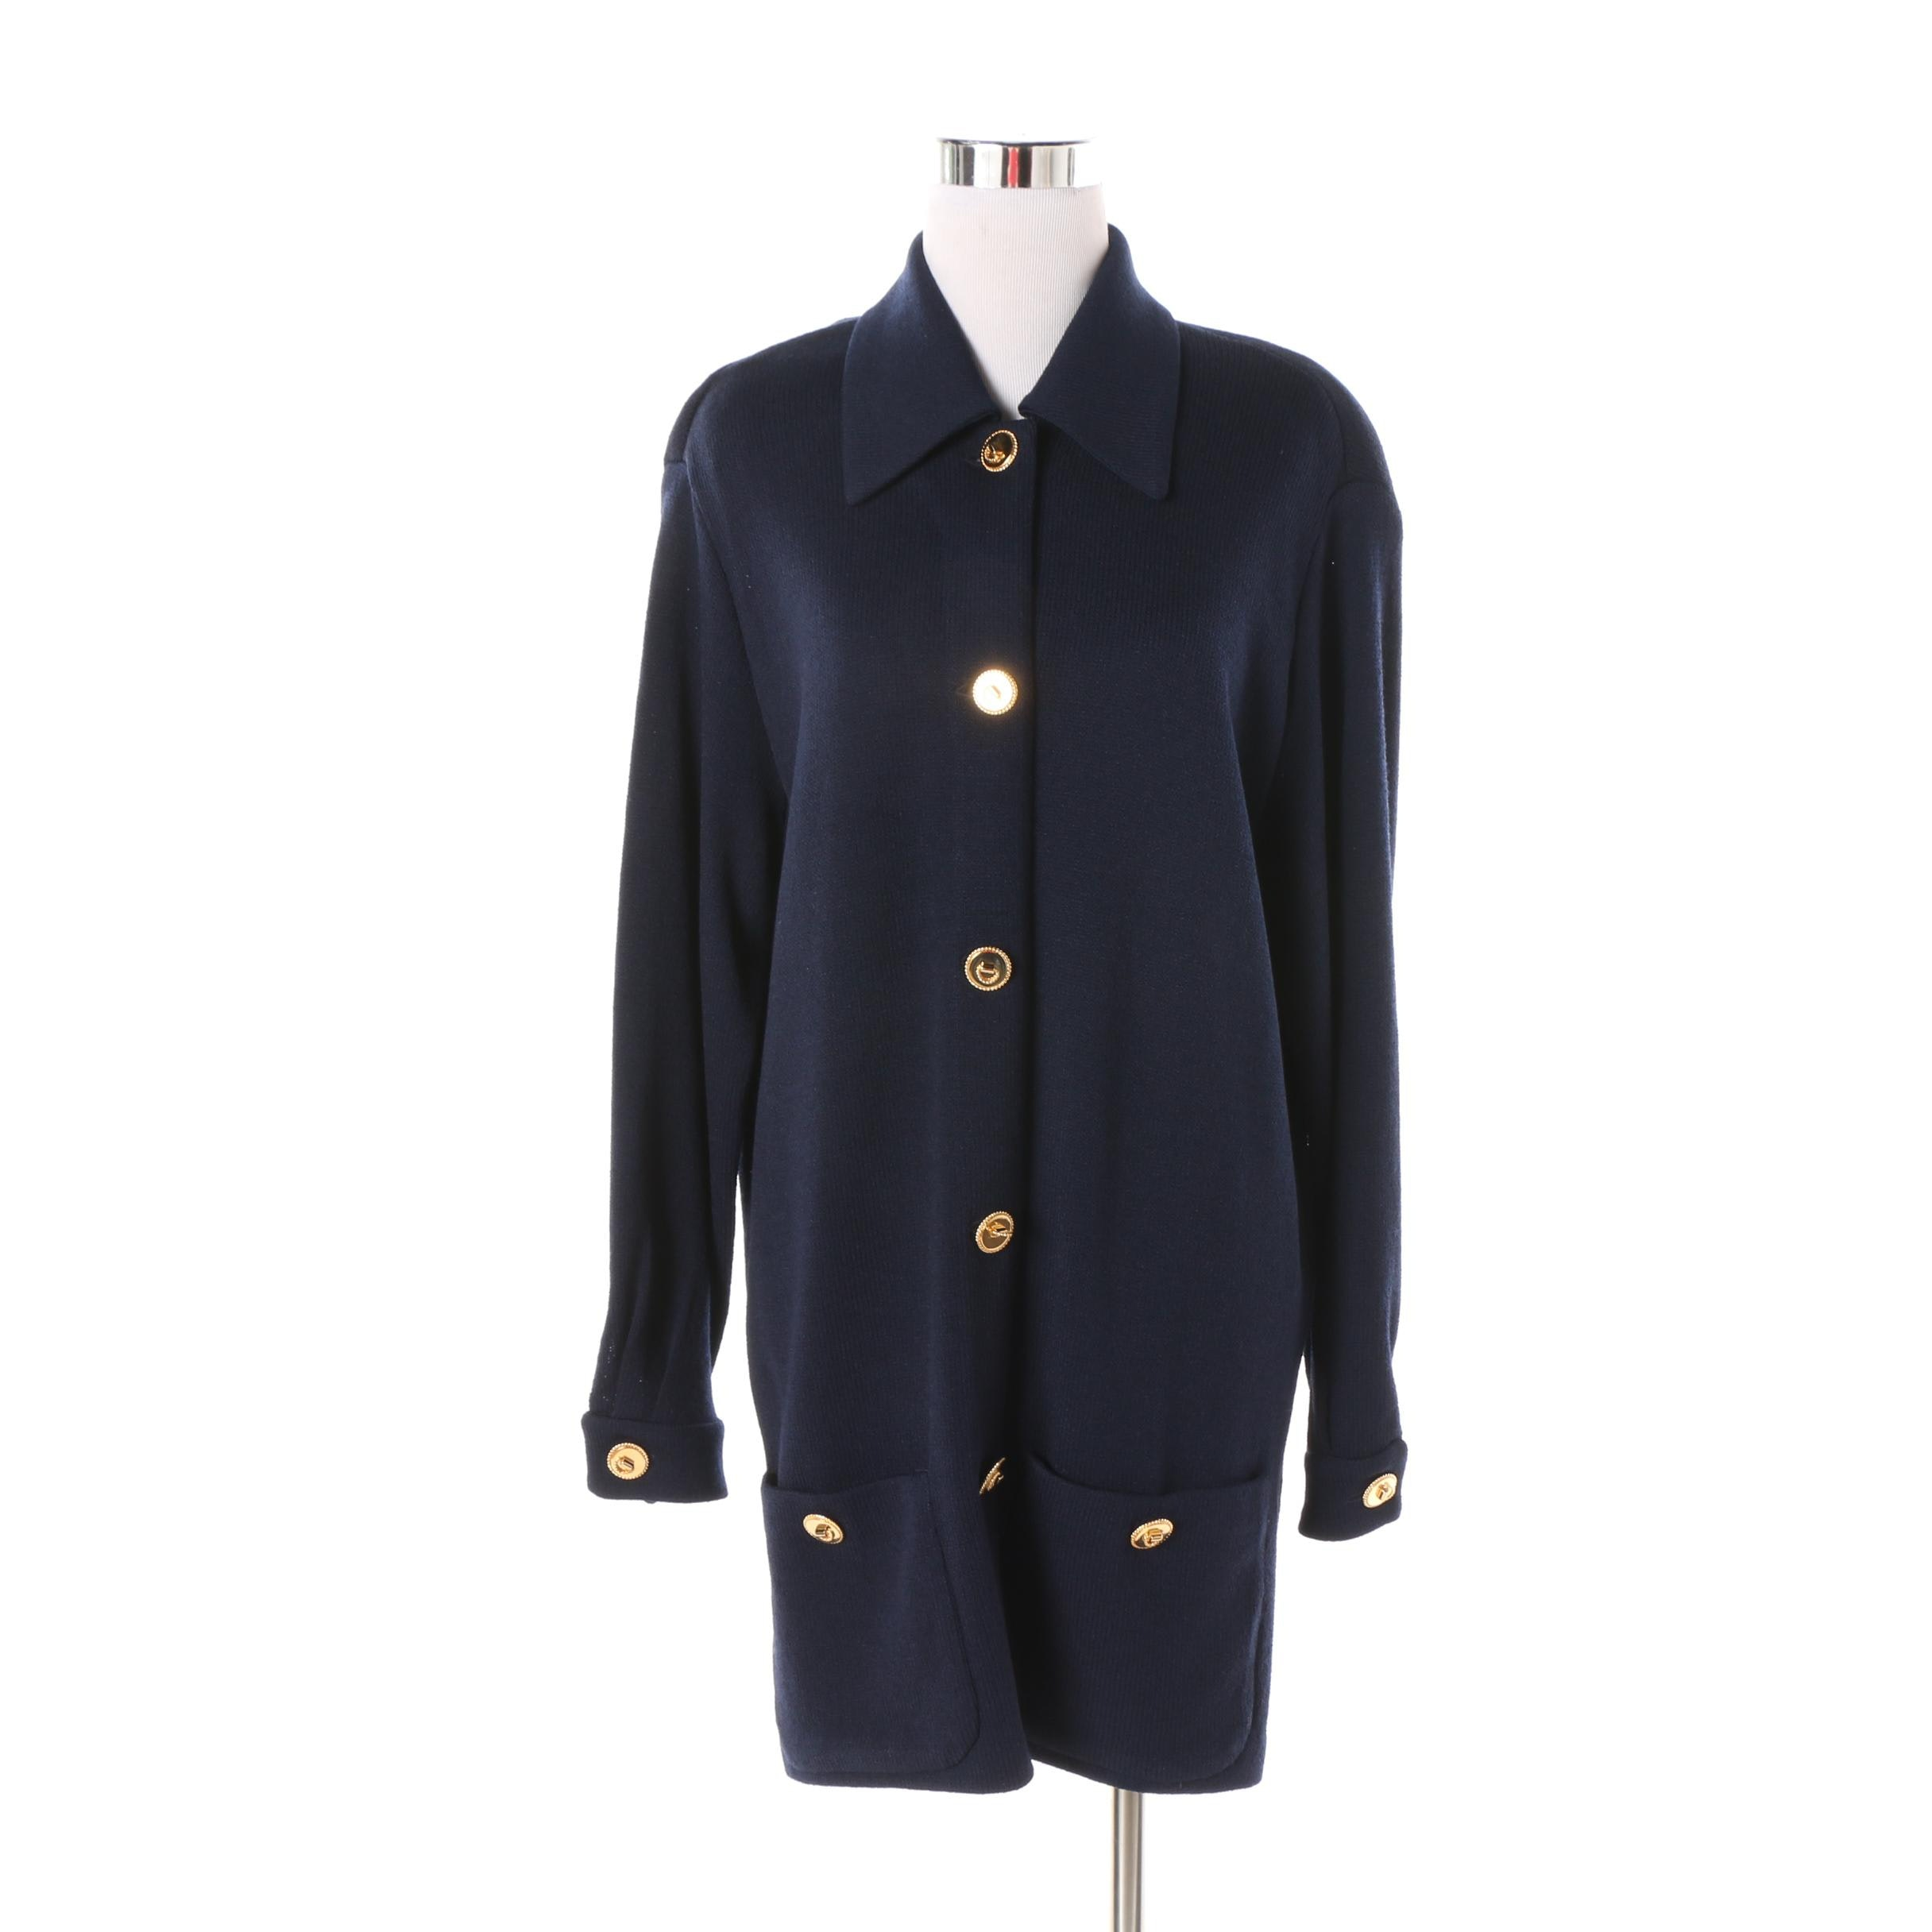 Women's St. John Collection Navy Blue Knit Jacket